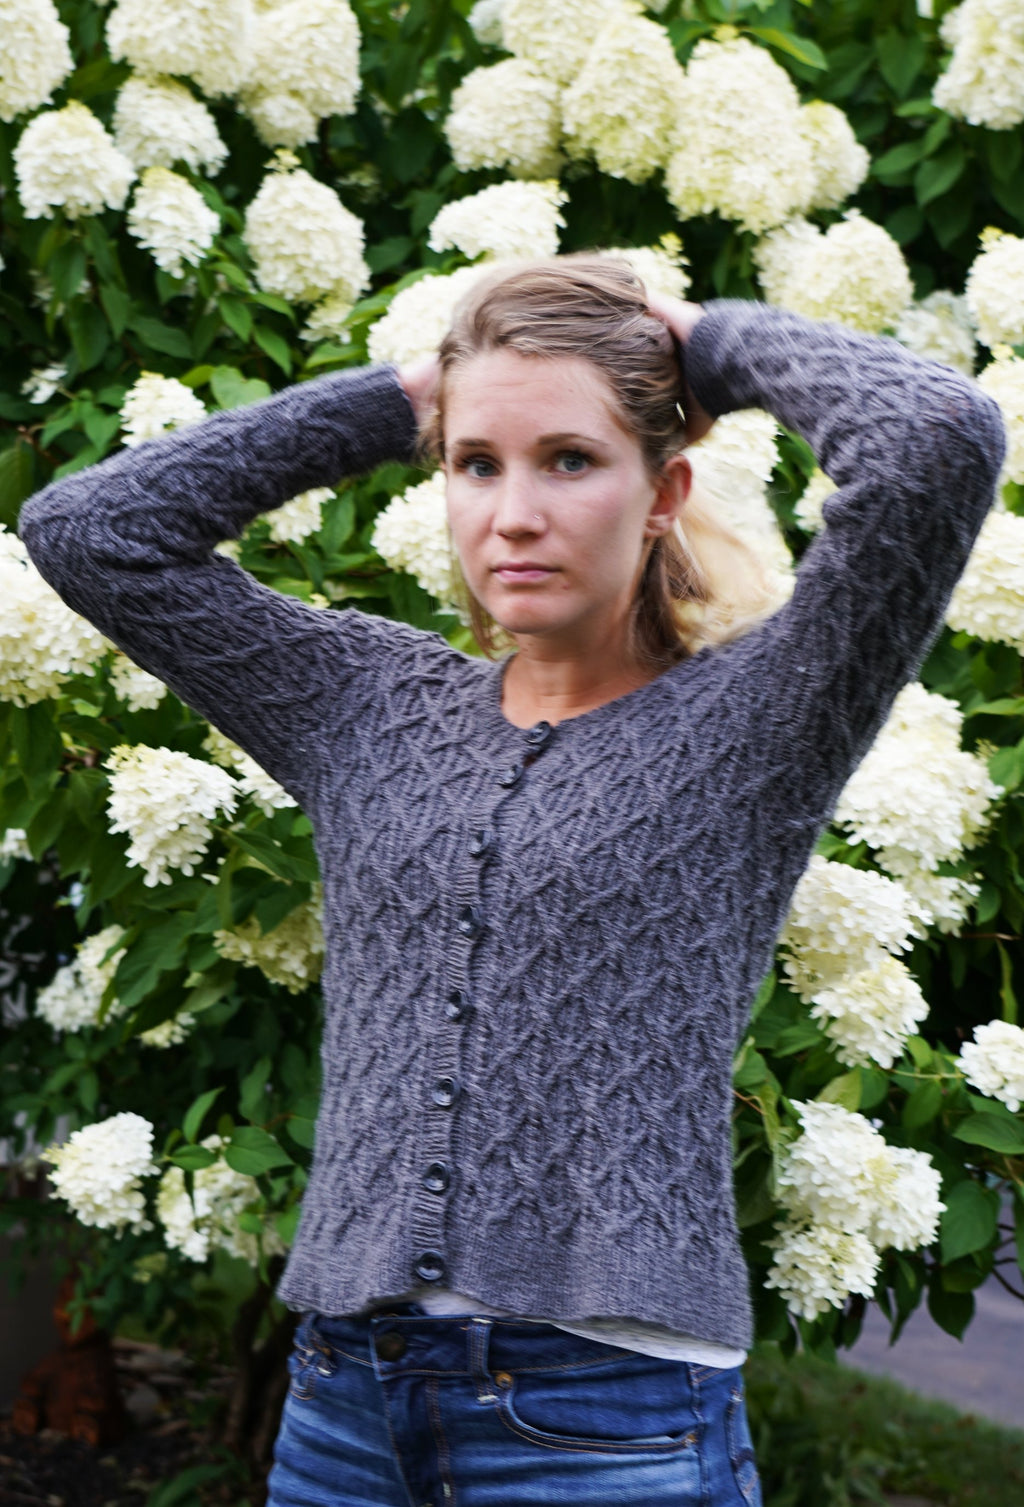 Thatched Country Cardigan - Designed by Vanessa Ewin